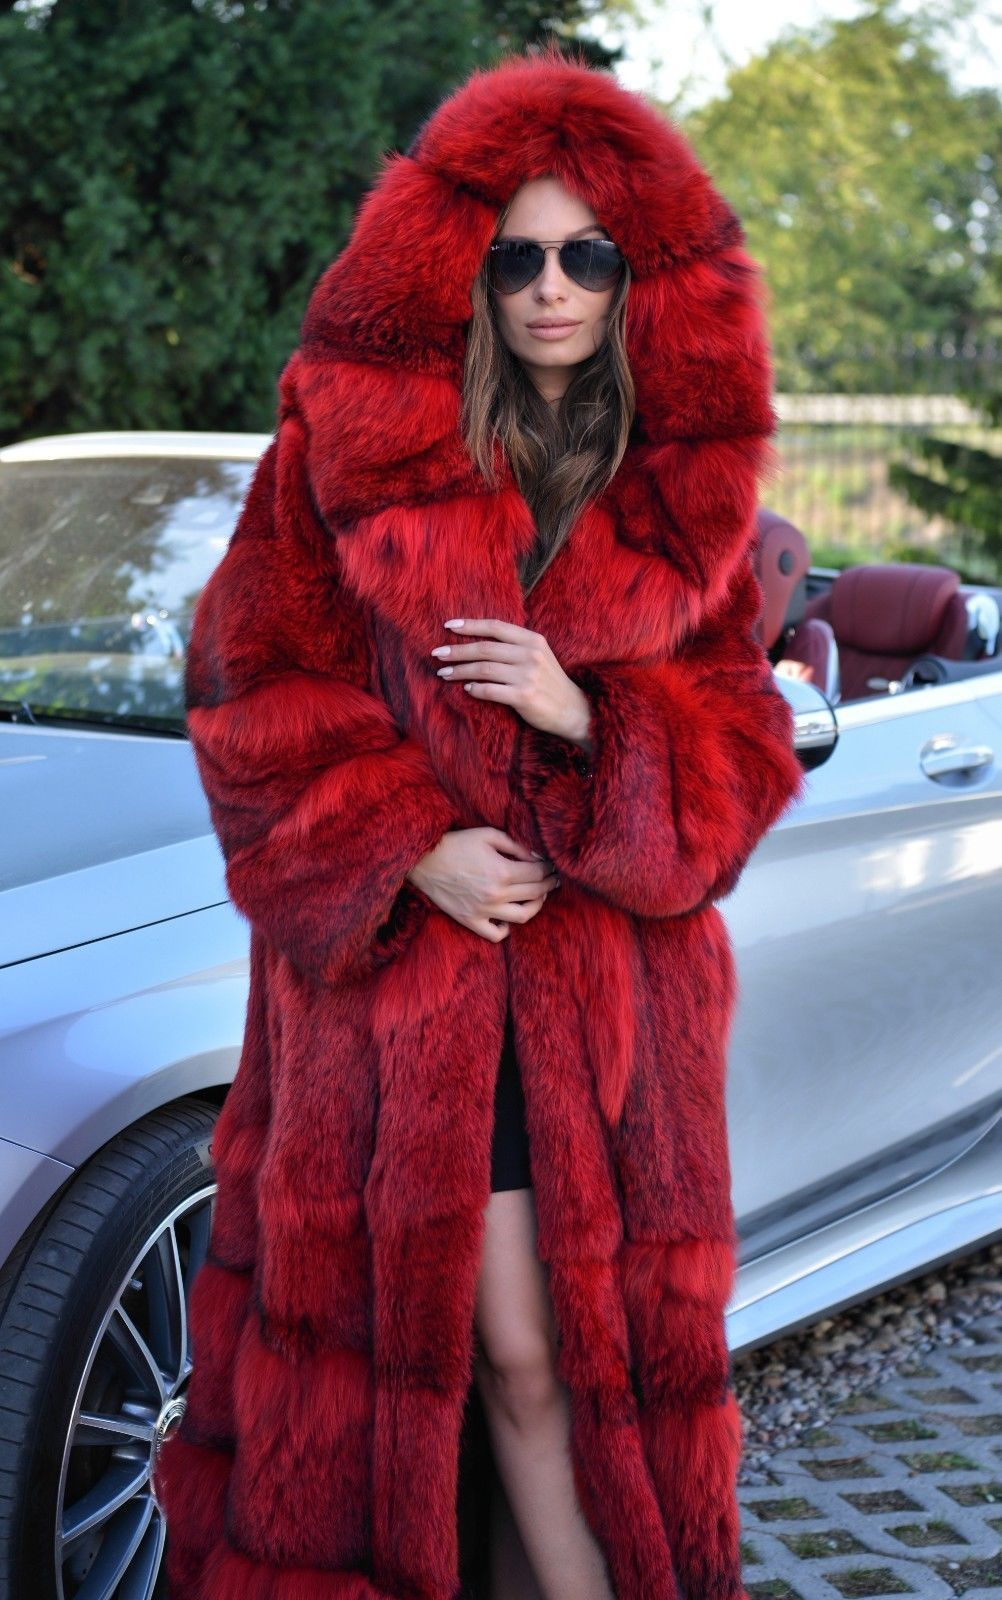 d3dd6355891 Female Red Long Hood Fur Coat in 2019 | Stylicious | Fur, Pink fur ...